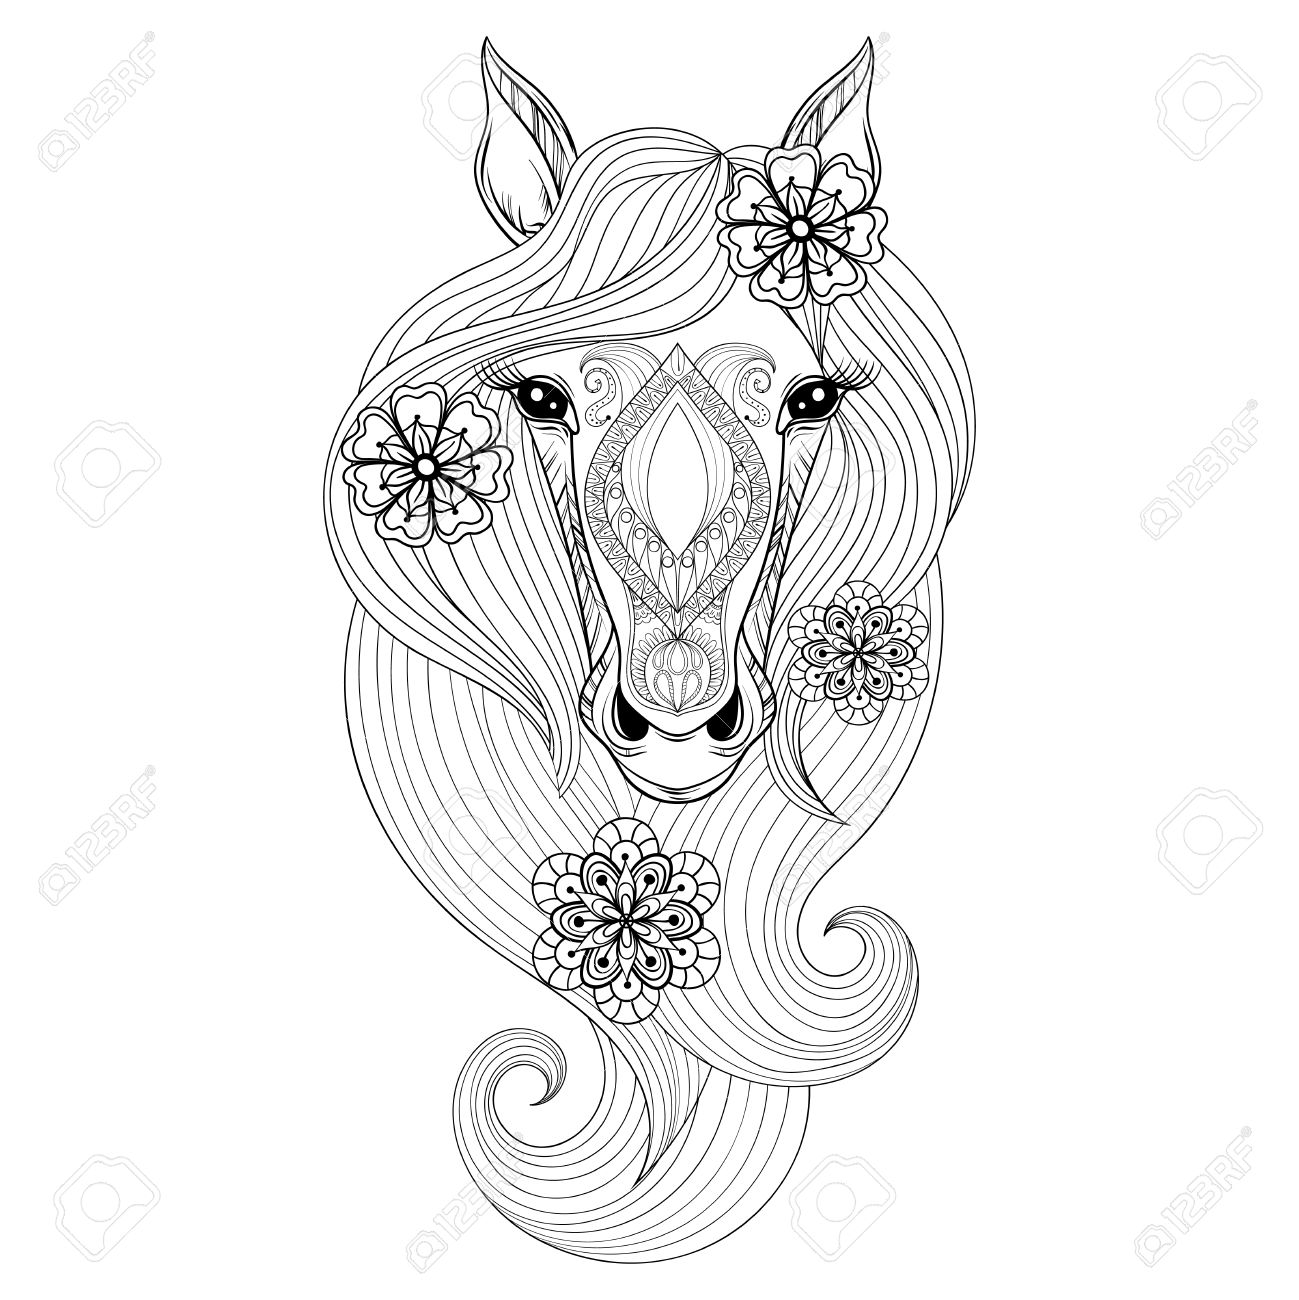 vector horse coloring page with horse face hand drawn patterned